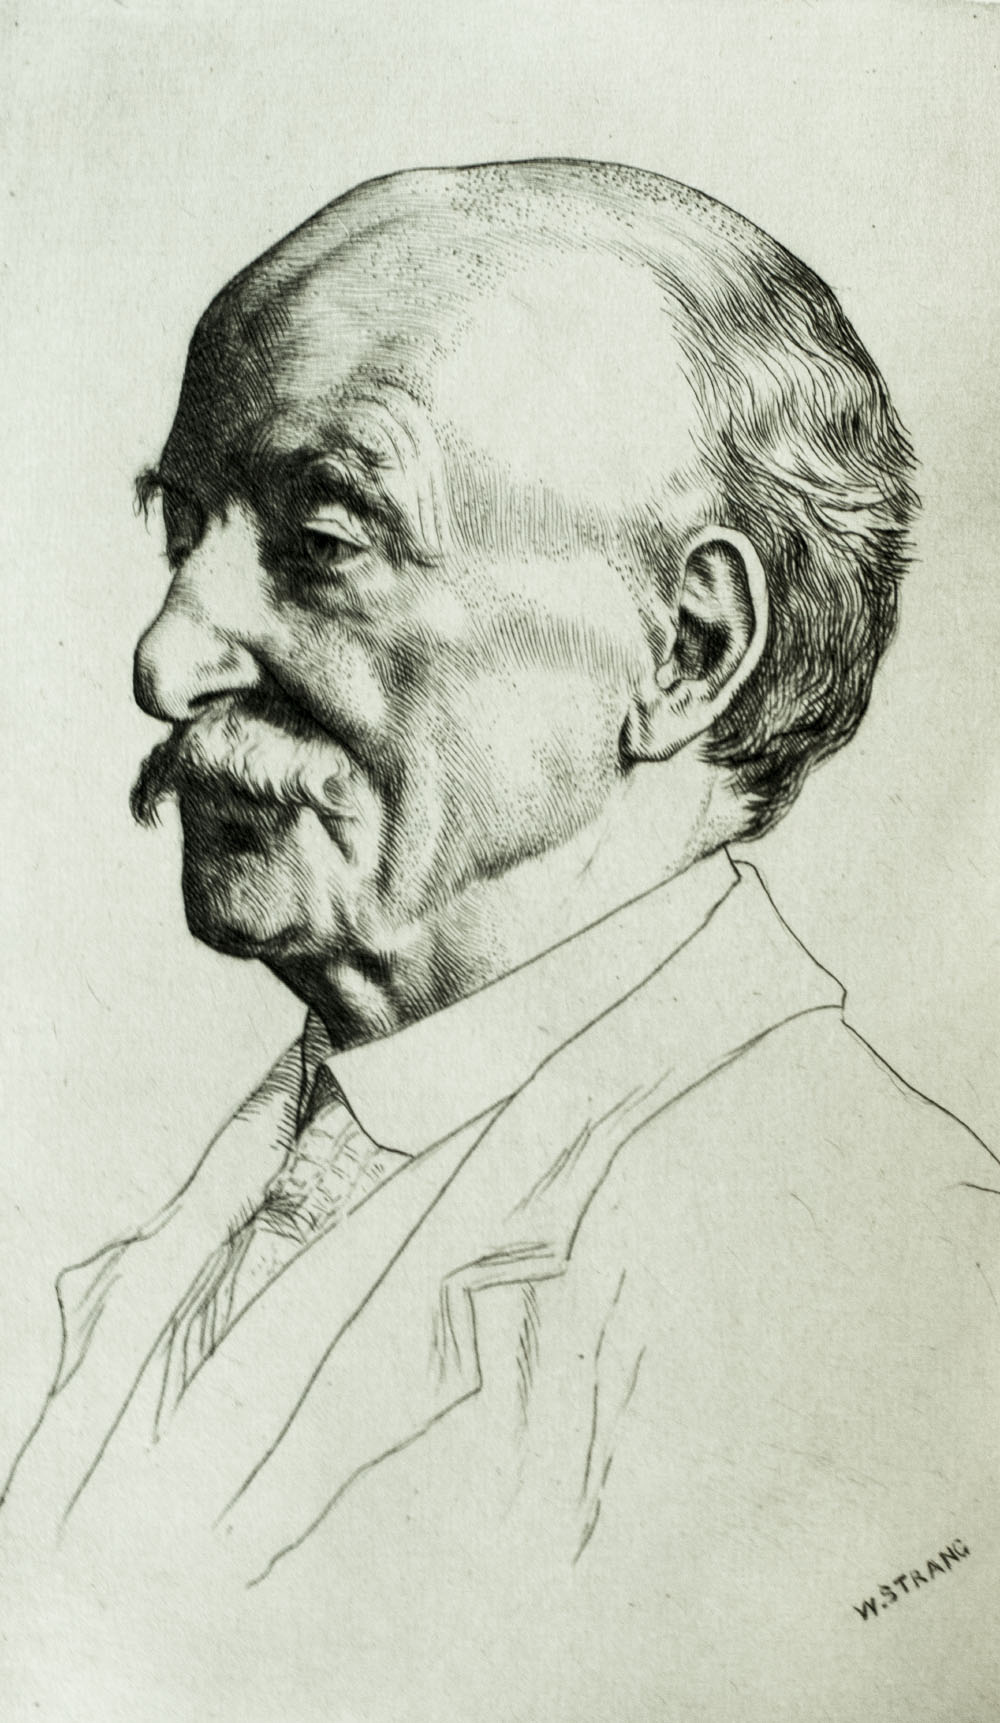 The Works of Thomas Hardy.